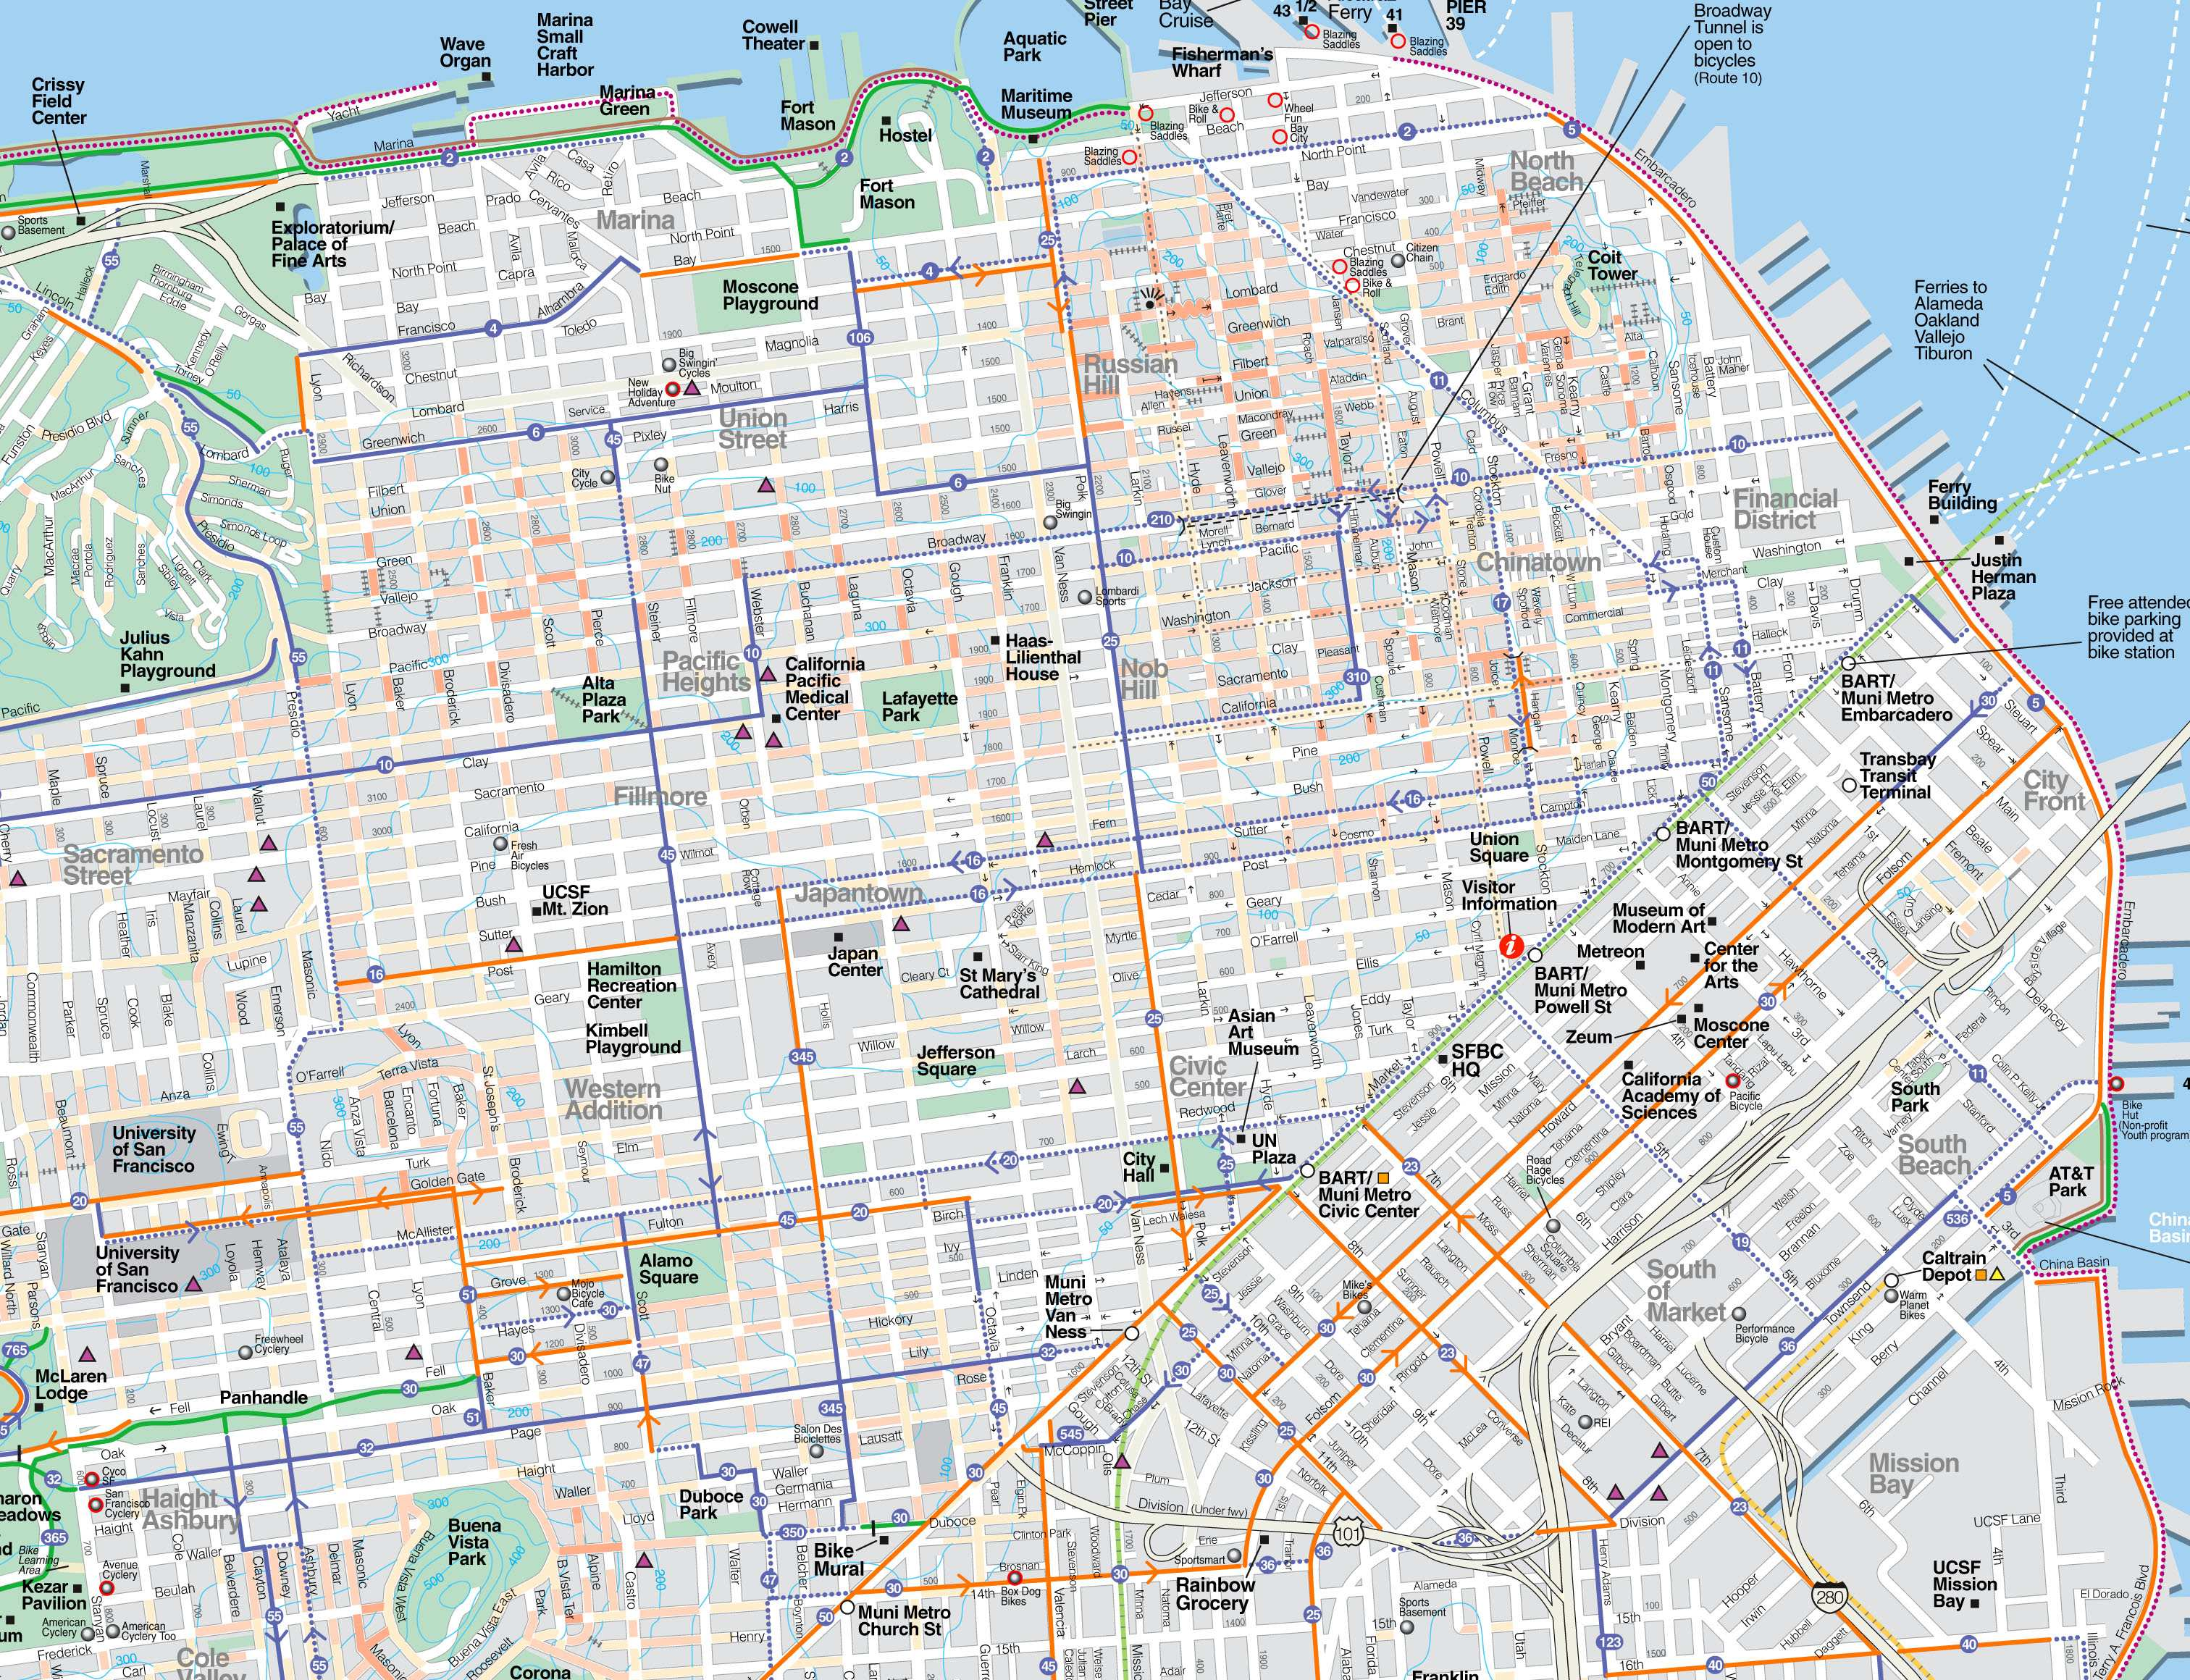 San Francisco Street Map Large San Francisco Maps for Free Download and Print | High